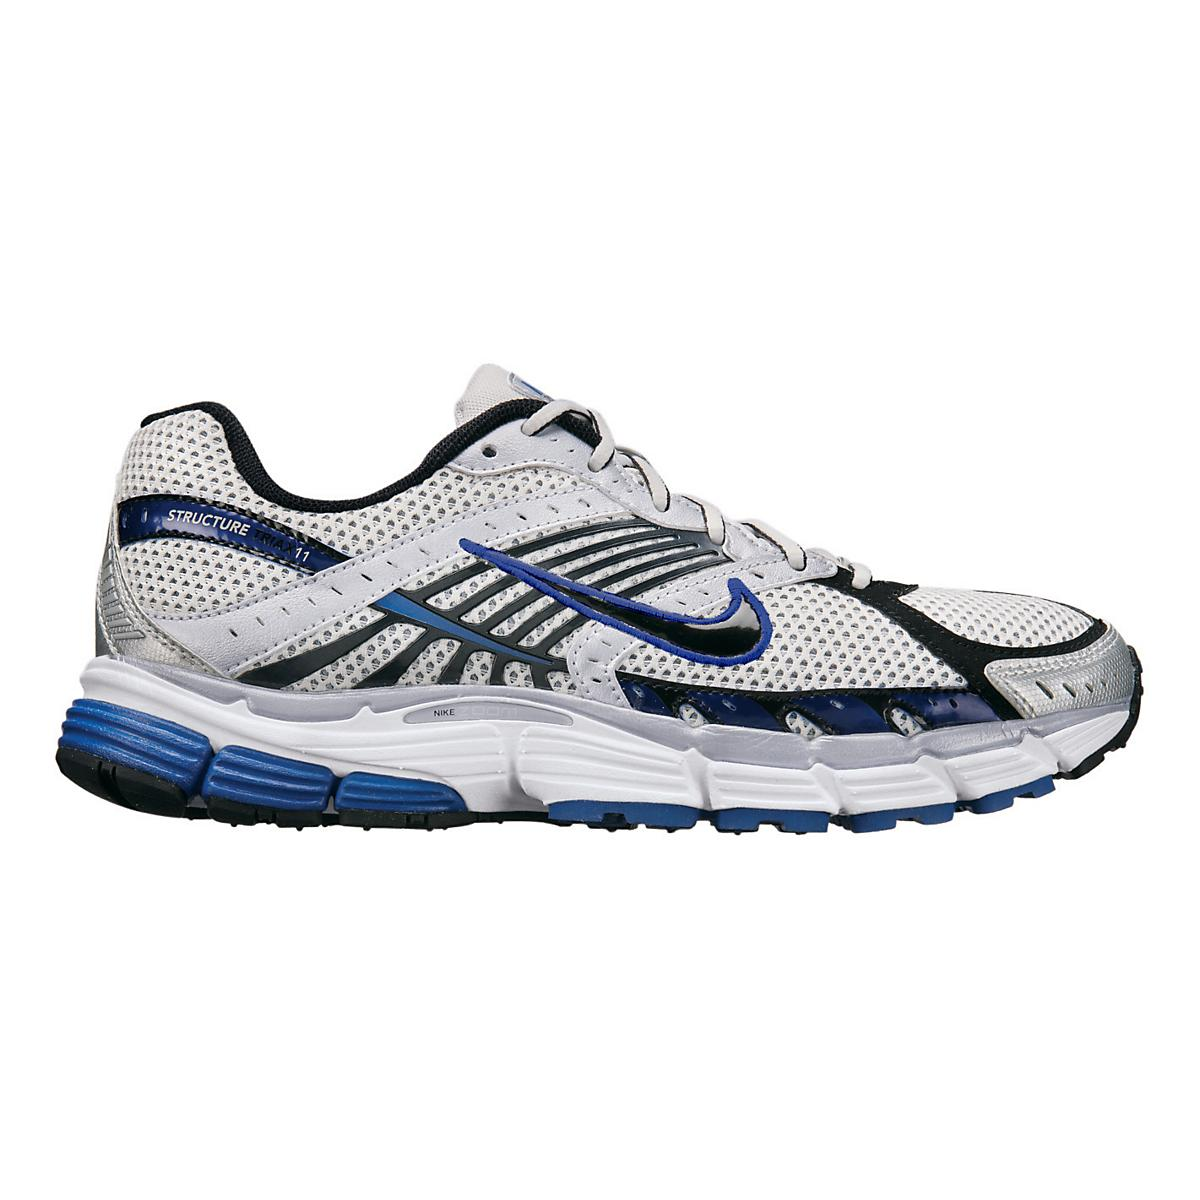 outlet store 50cbd 7c9c1 Mens Nike Air Zoom Structure Triax+ 11 Running Shoe at Road Runner Sports